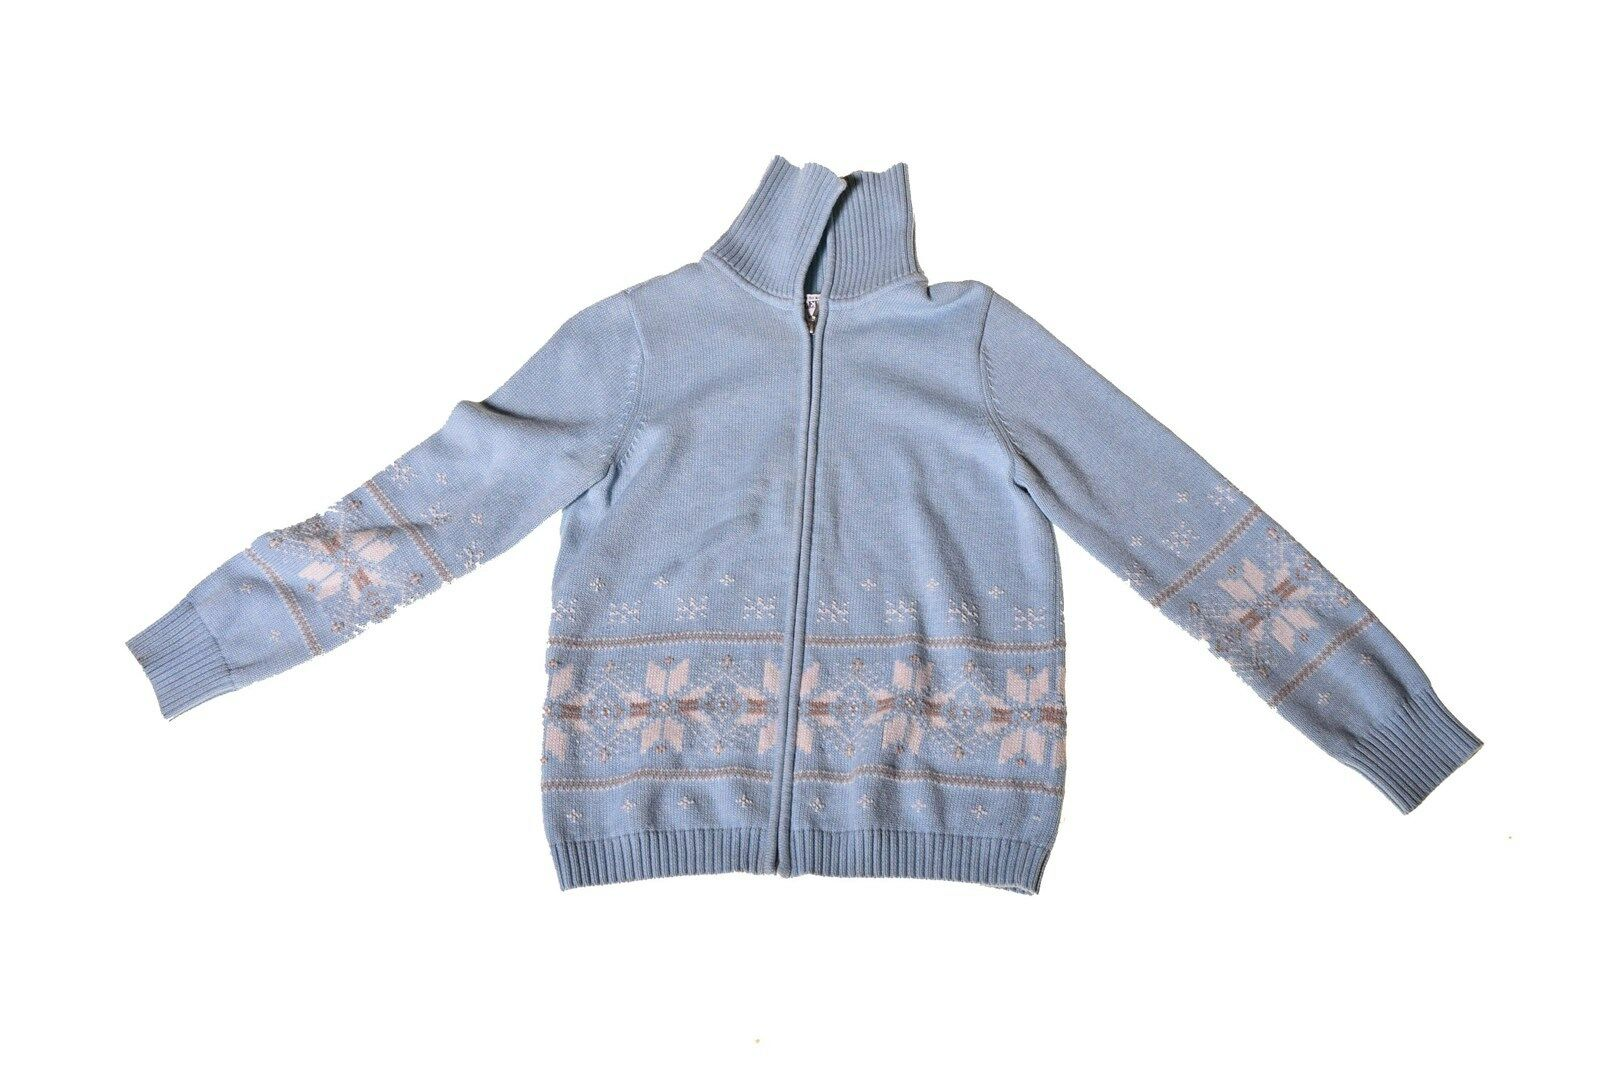 Women's Pendleton Wool Sweater bluee Snowflake Design Small